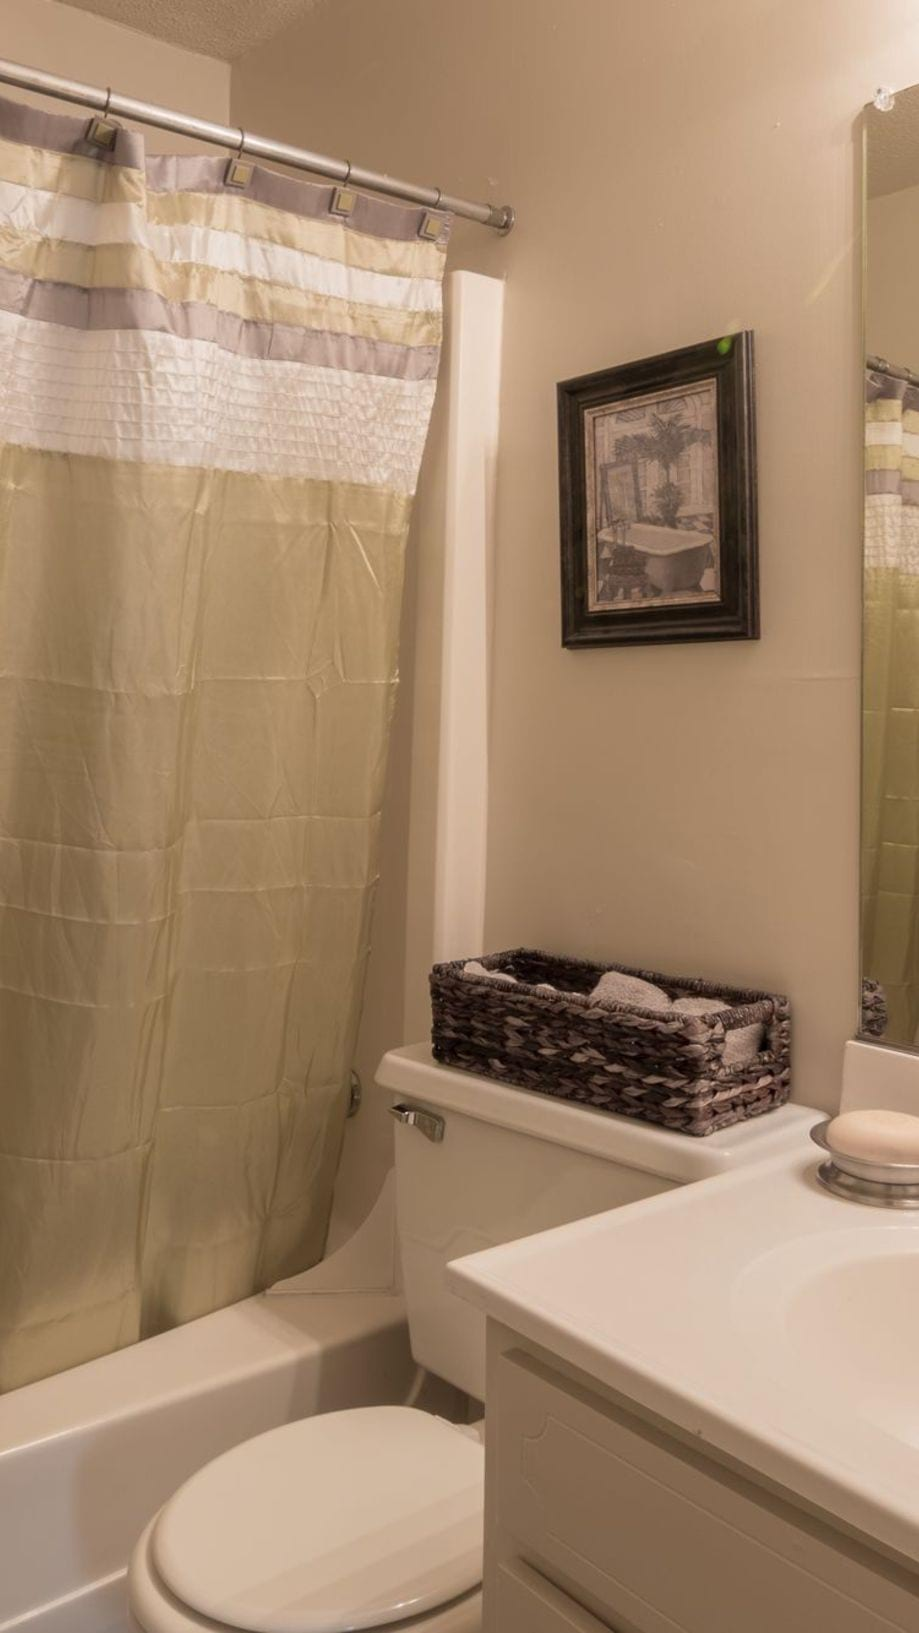 Apt 9 Shower Curtain Amenities At Glendare Park Apartments